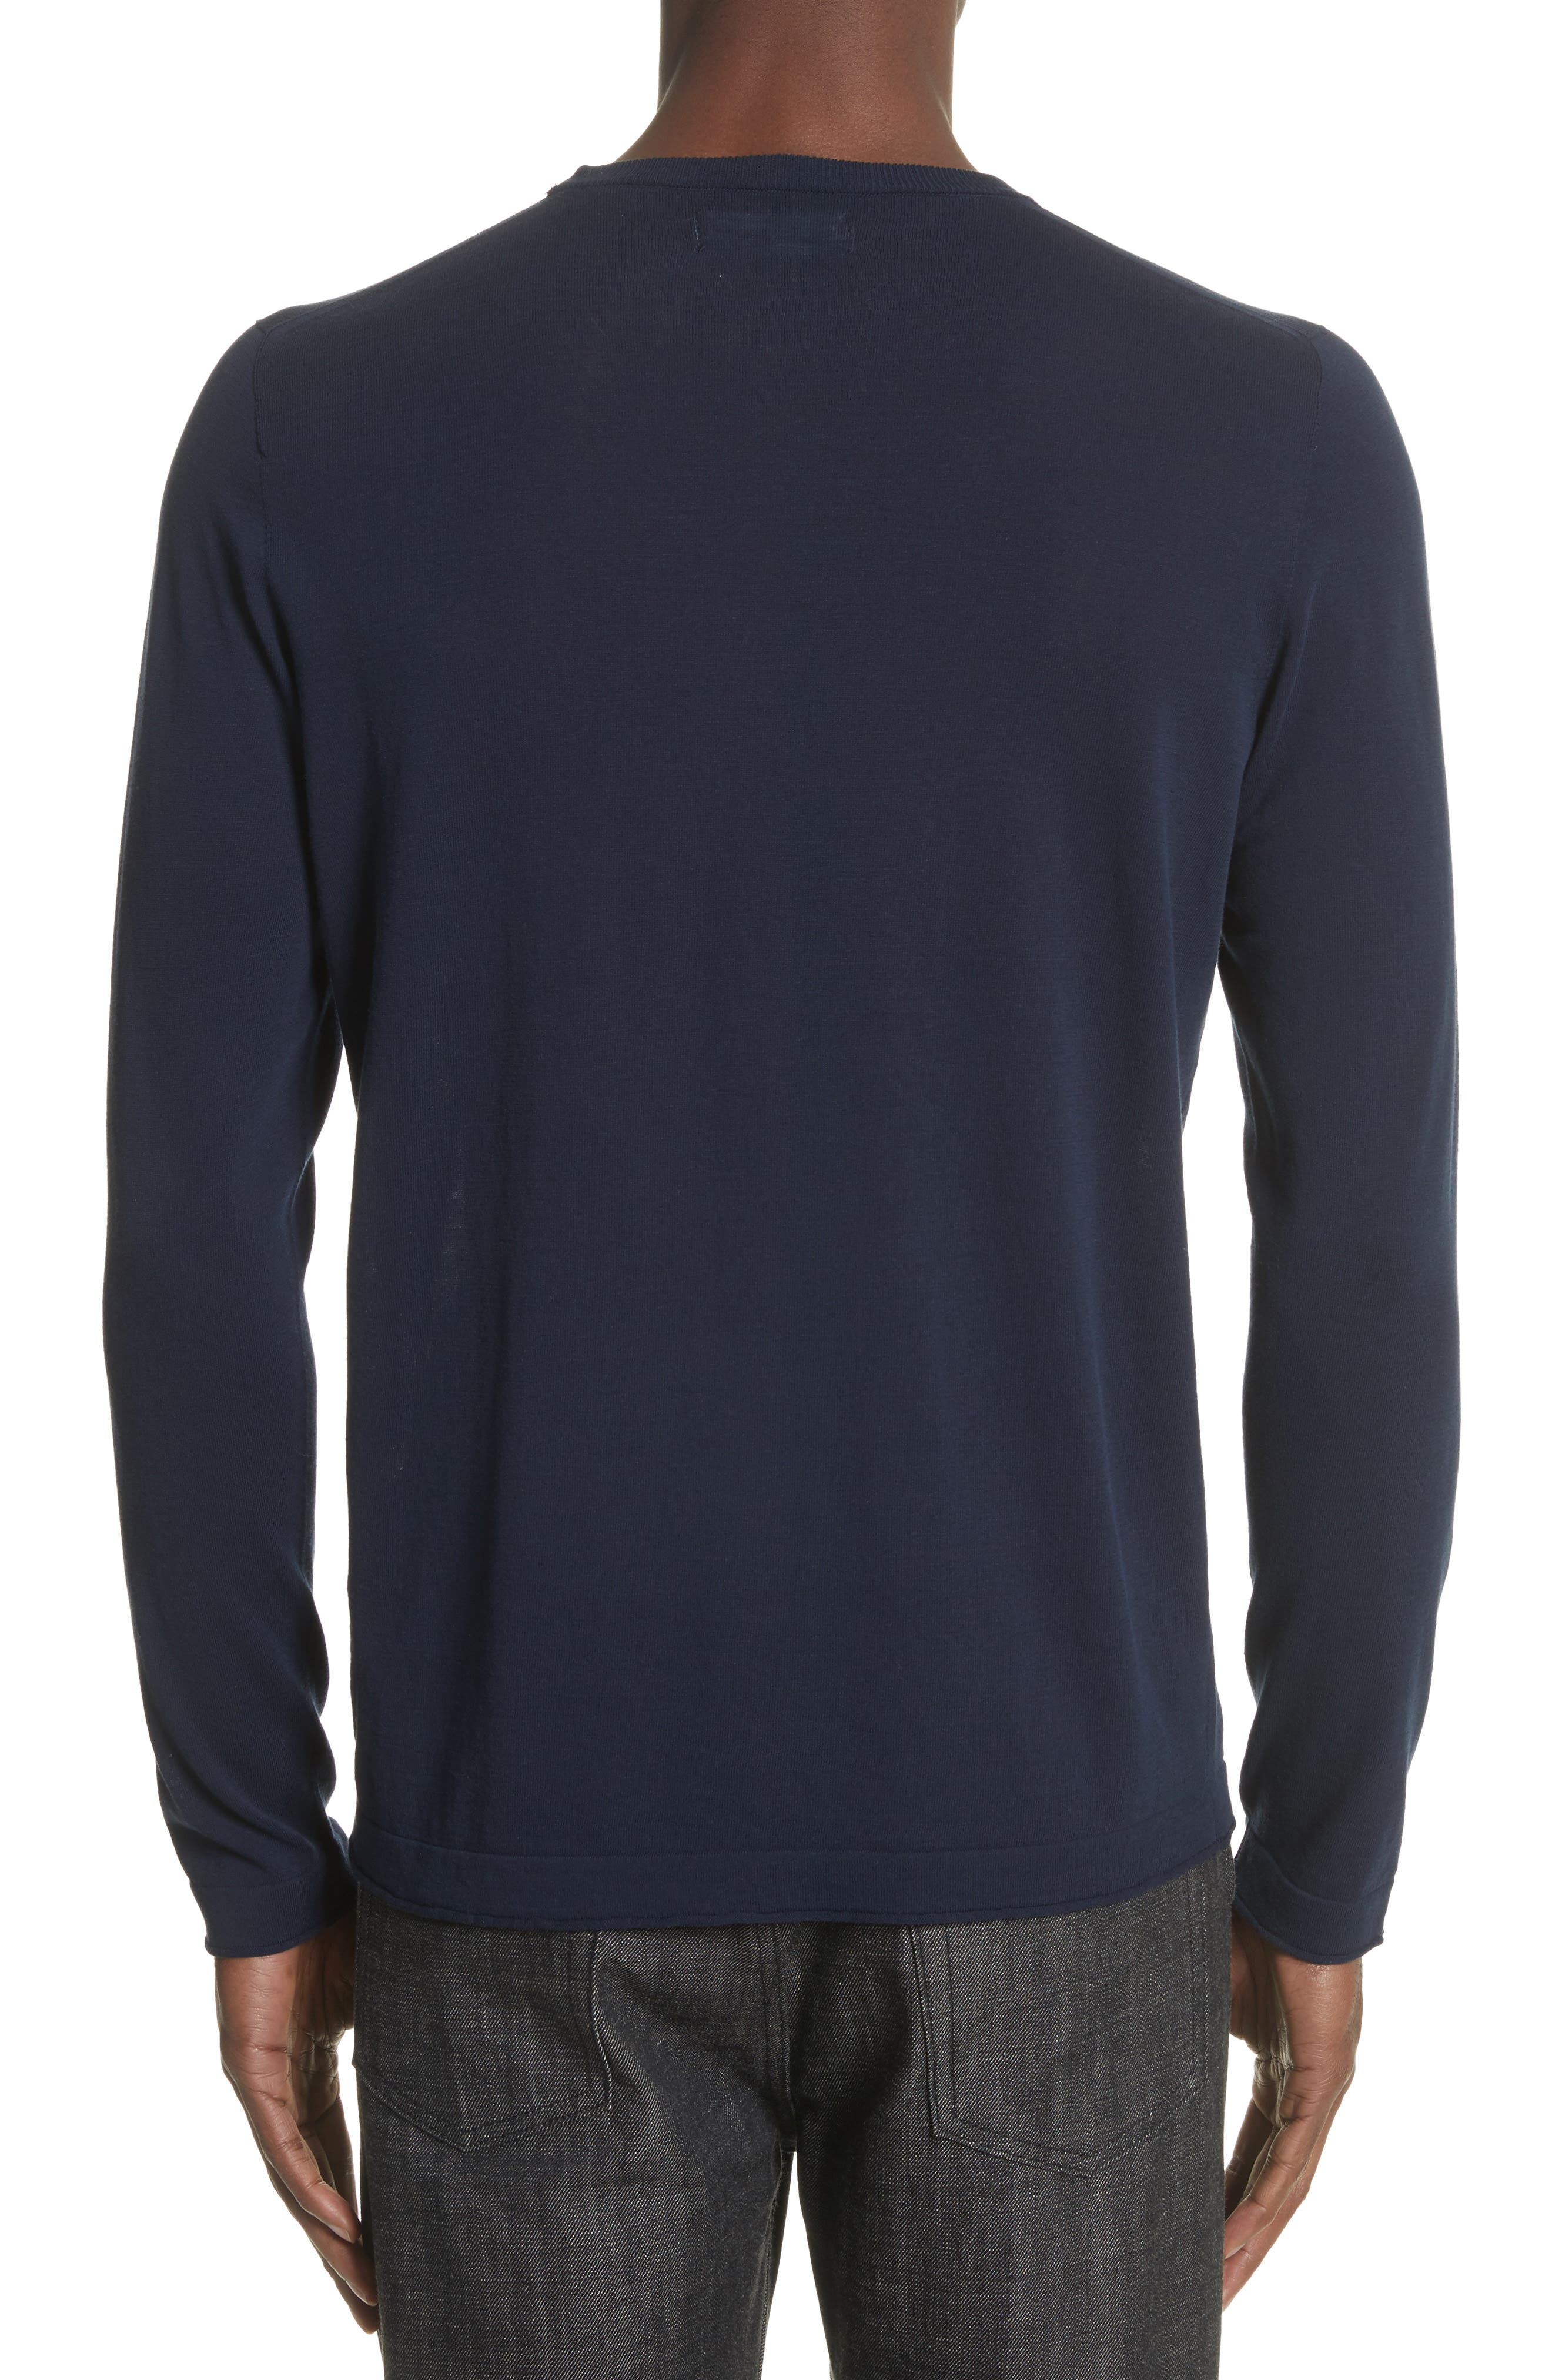 Embroidered Crest Sweater,                             Alternate thumbnail 2, color,                             Blue